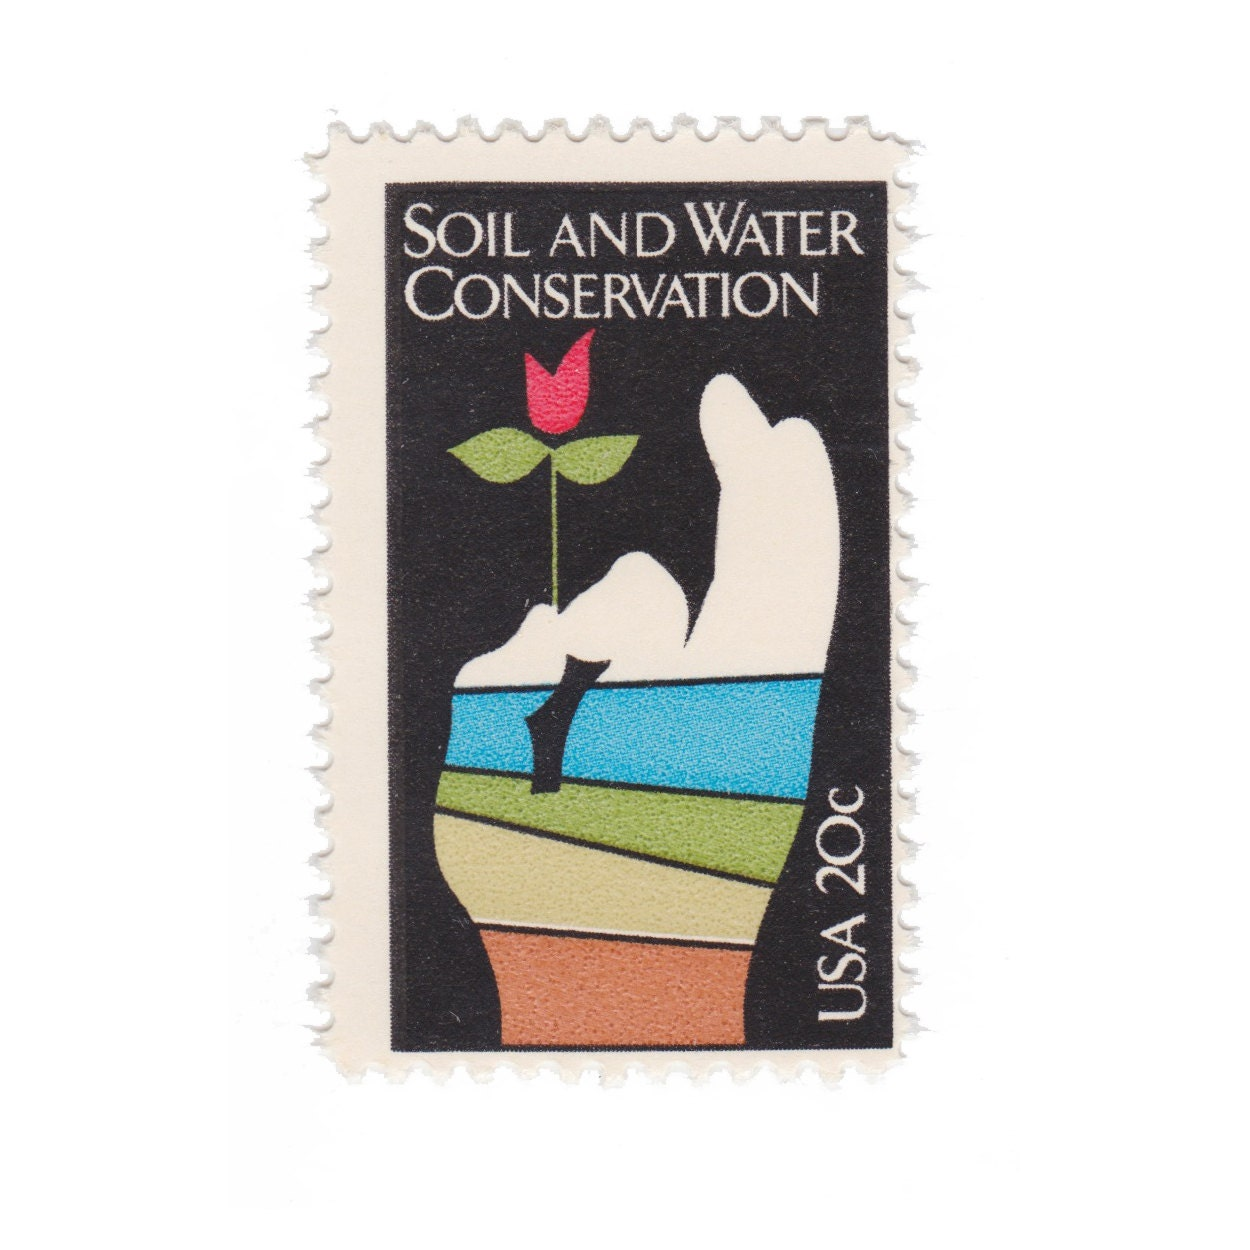 1984 soil and water conservation vintage postage stamps 10 for Soil and water conservation